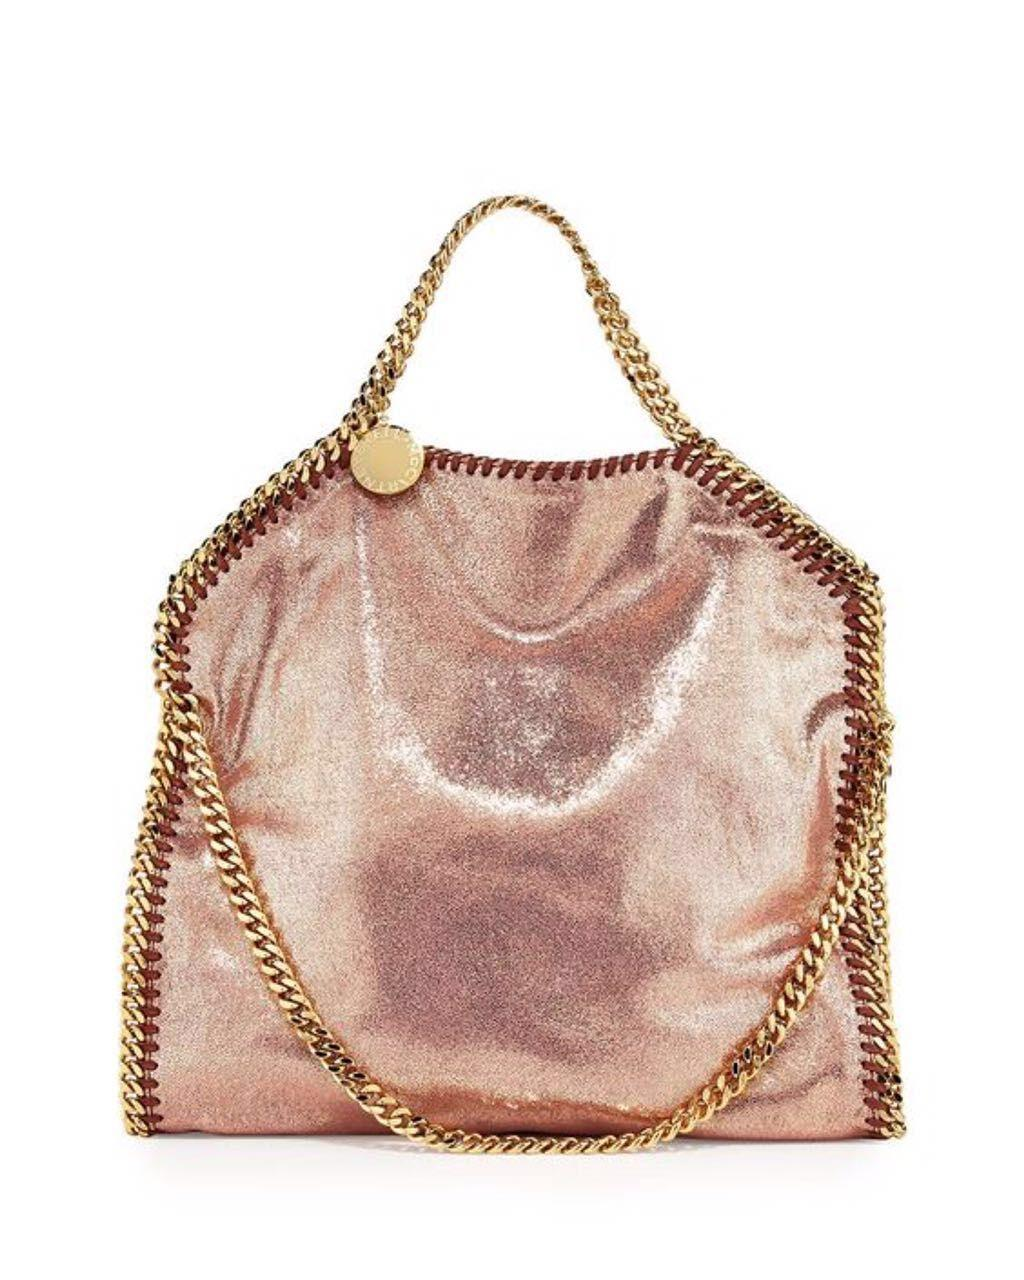 New Listed Stella Falabella Shaggy Deer Pvc Shine Rose Golden Chain Luxury  Tote Exclusive Sale Stella Bag Online with  118.57 Piece on  Junjietrade168 s ... 1e8edf475a7aa